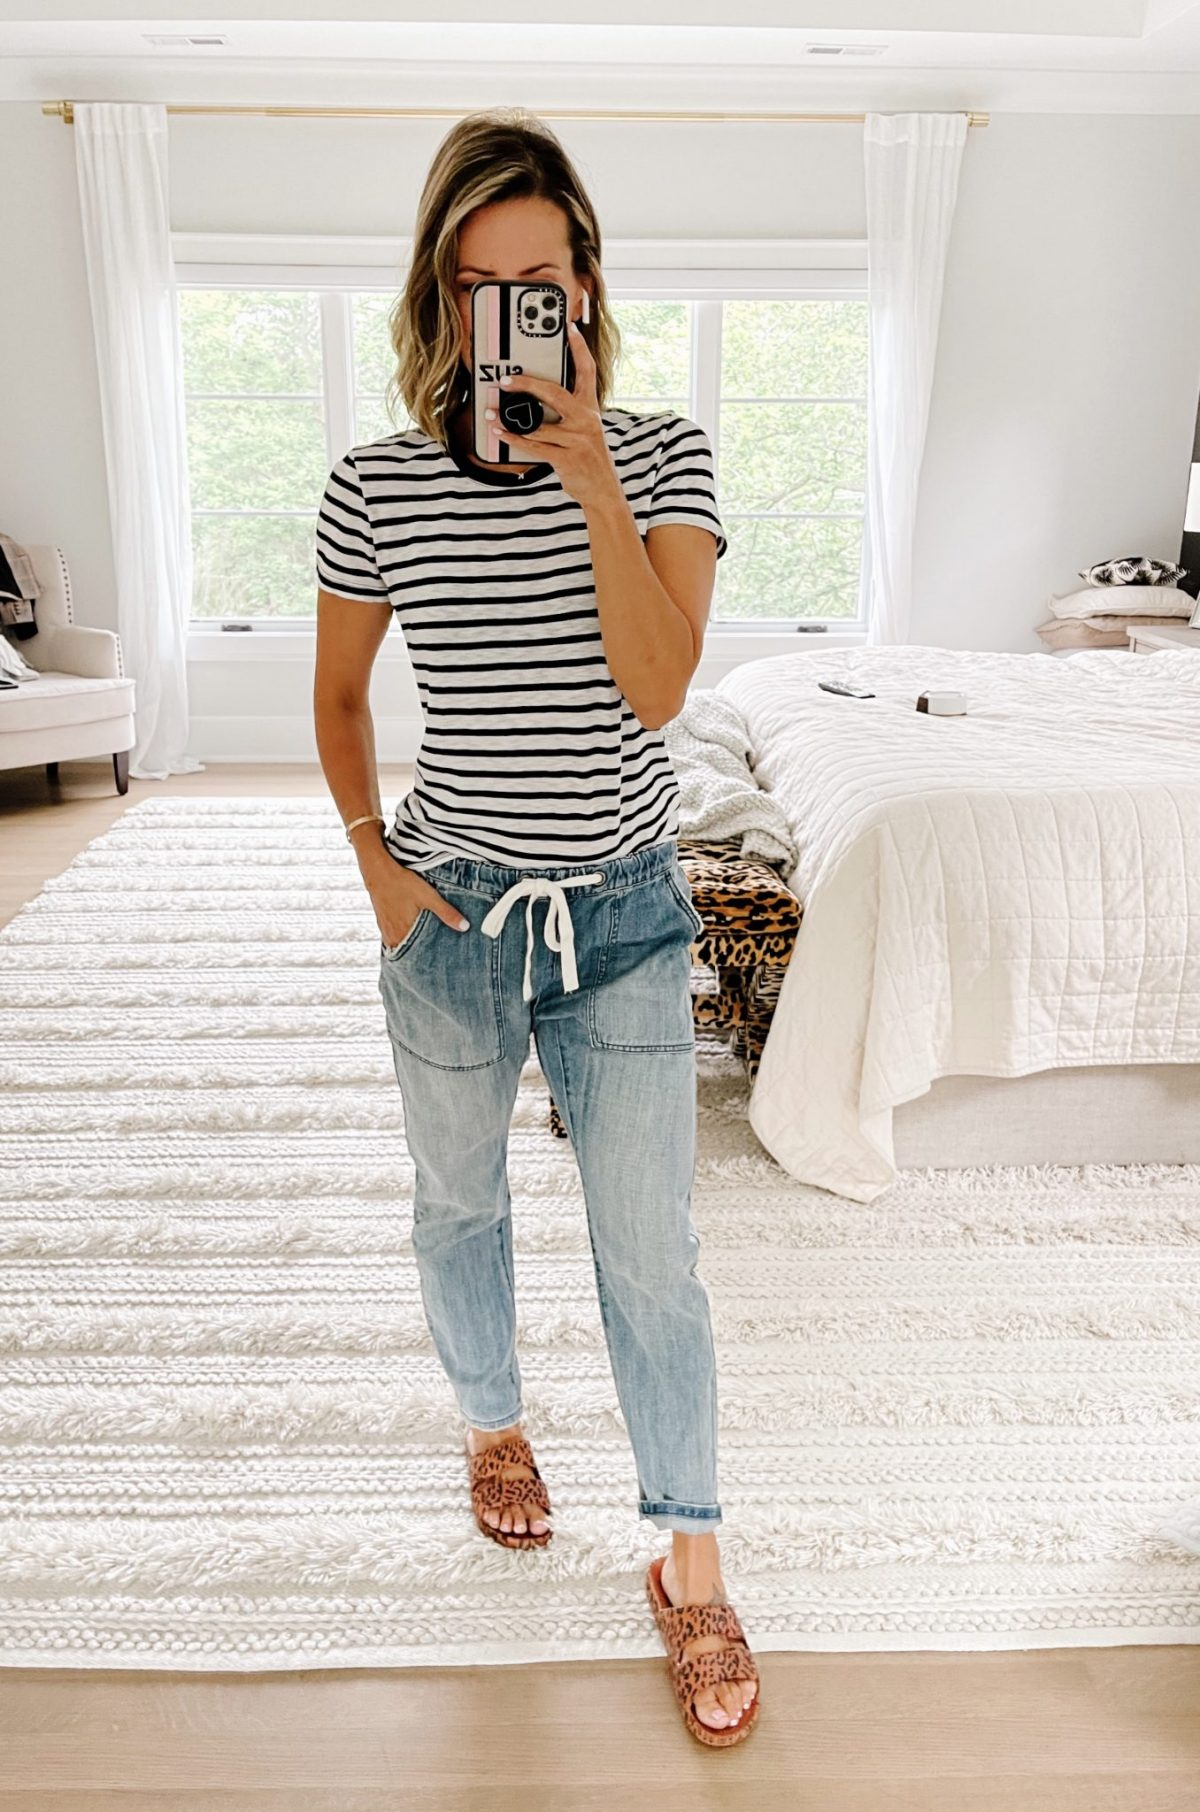 Late summer #ootd round up, striped tee and joggers